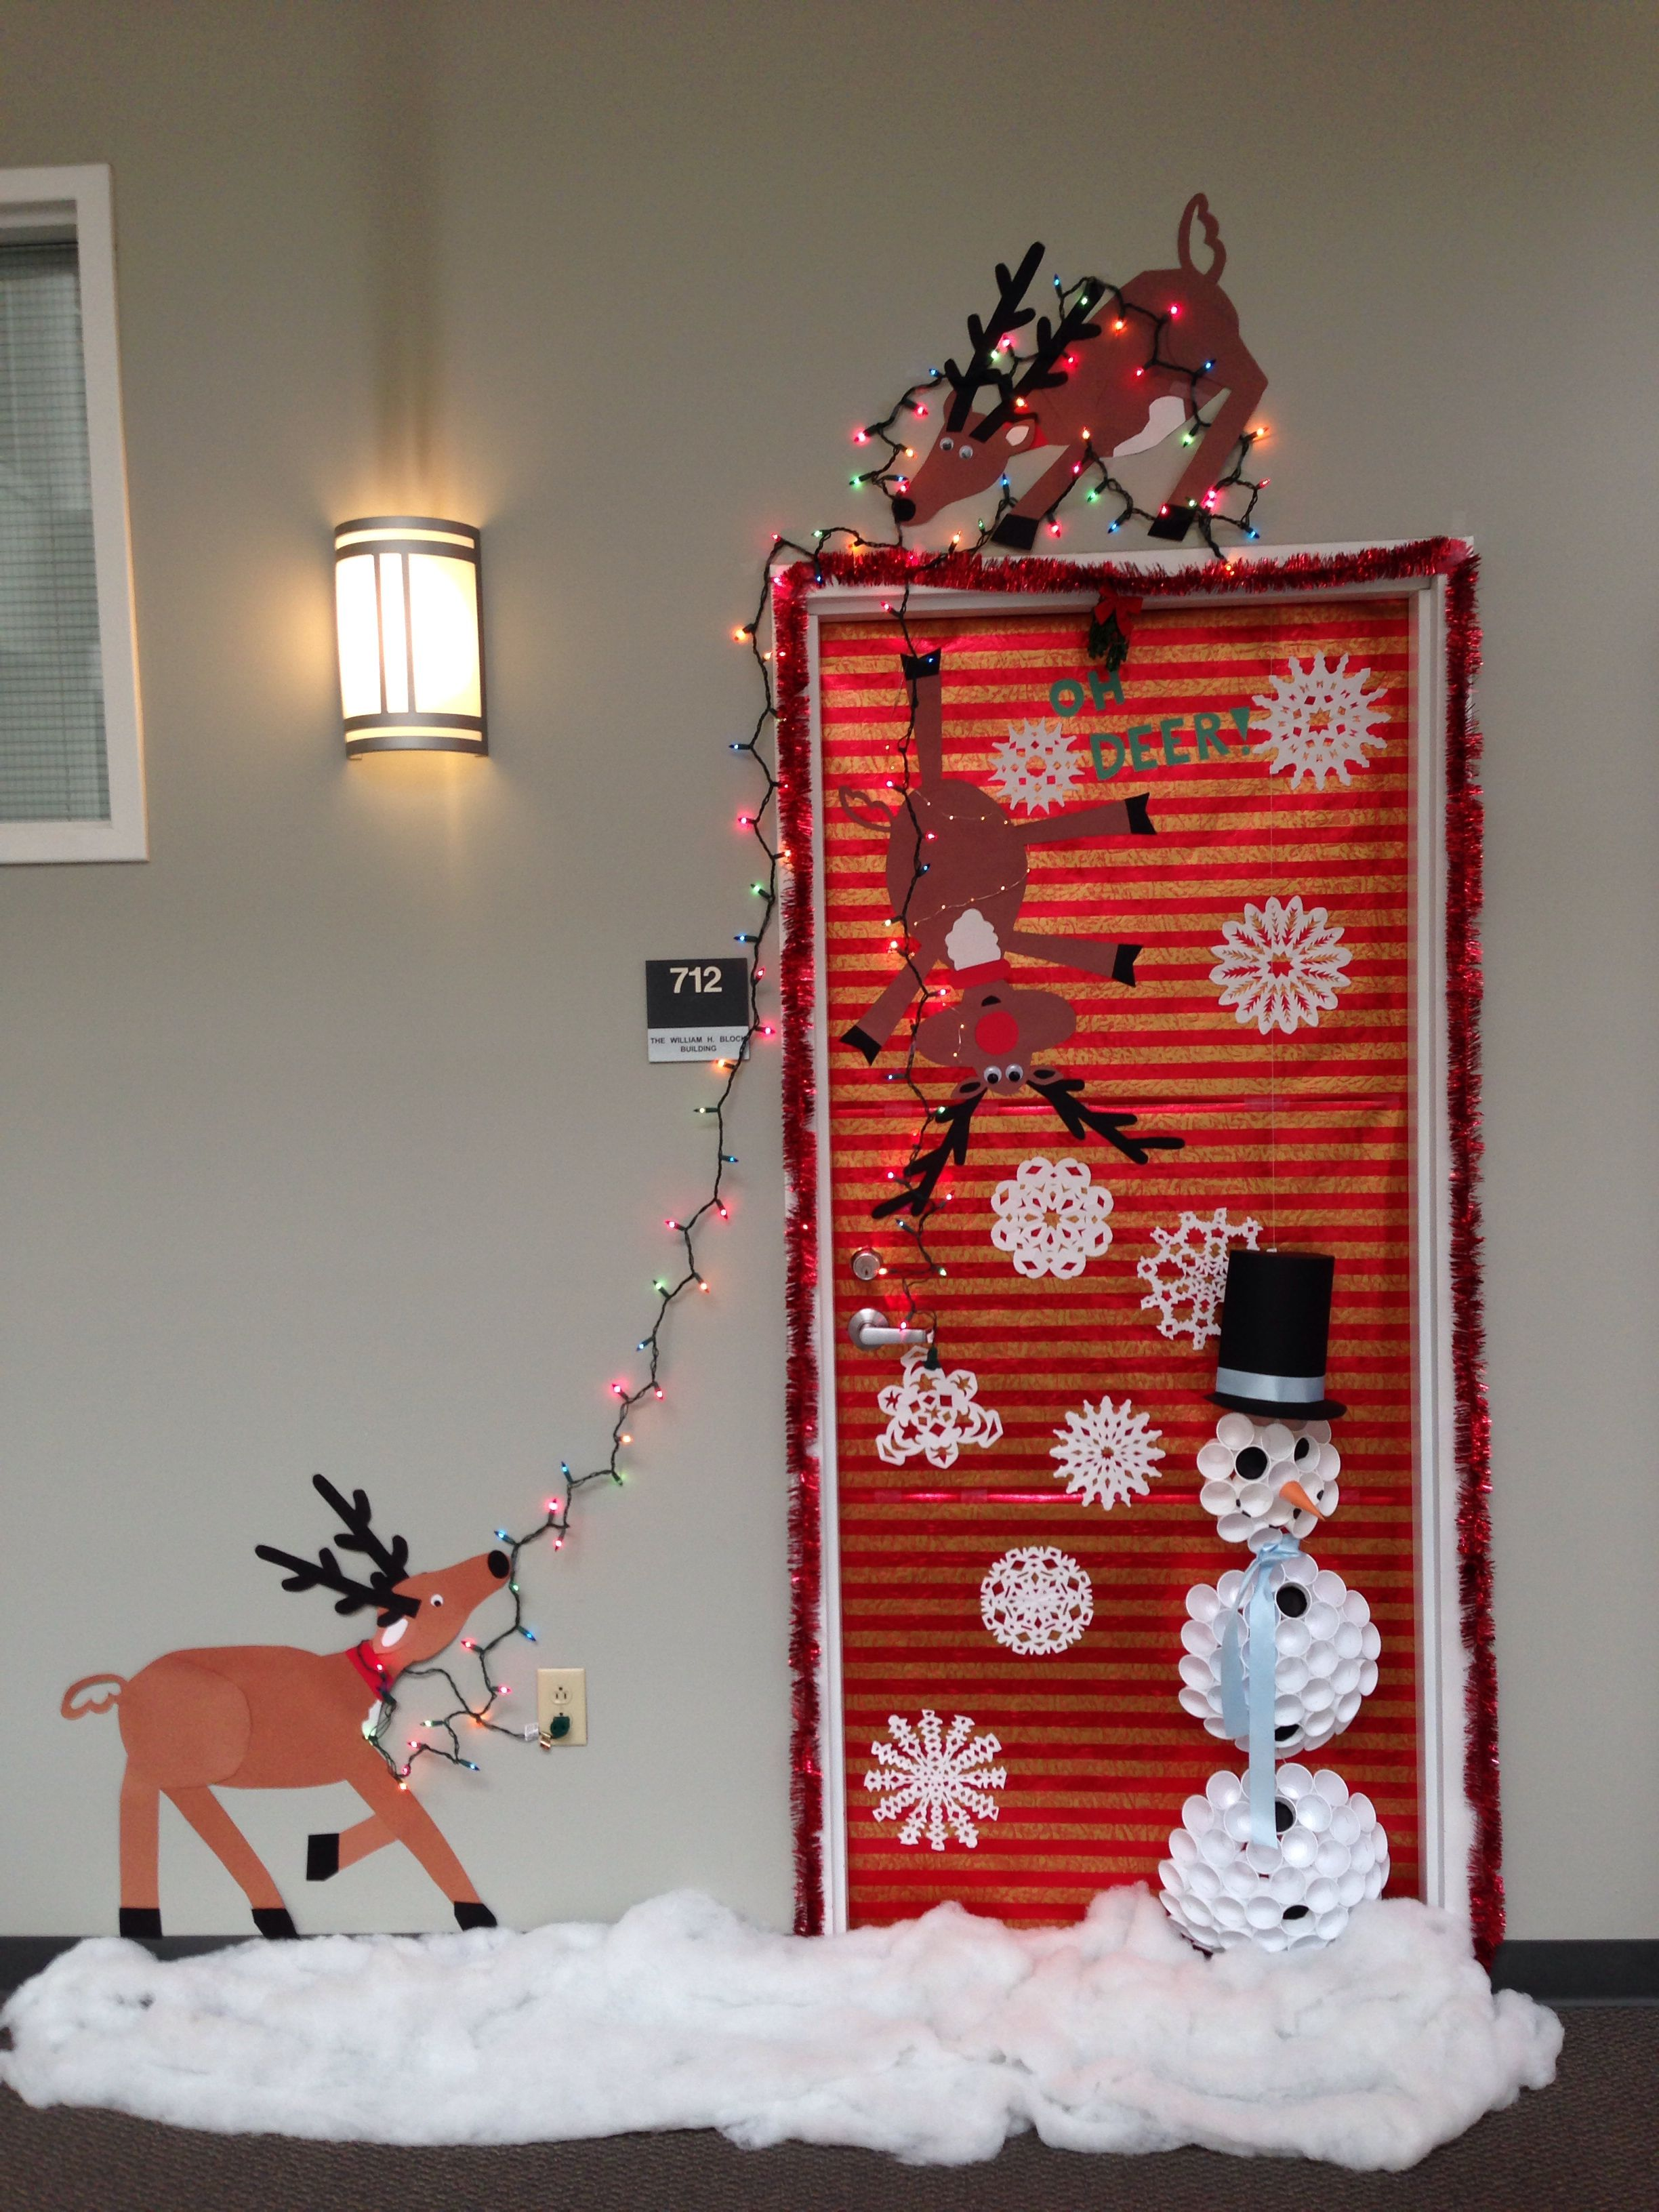 Our Christmas Door Decoration First Place Made Snowman With Dixie Cups Rei Christmas Classroom Door Holiday Door Decorations Office Christmas Decorations